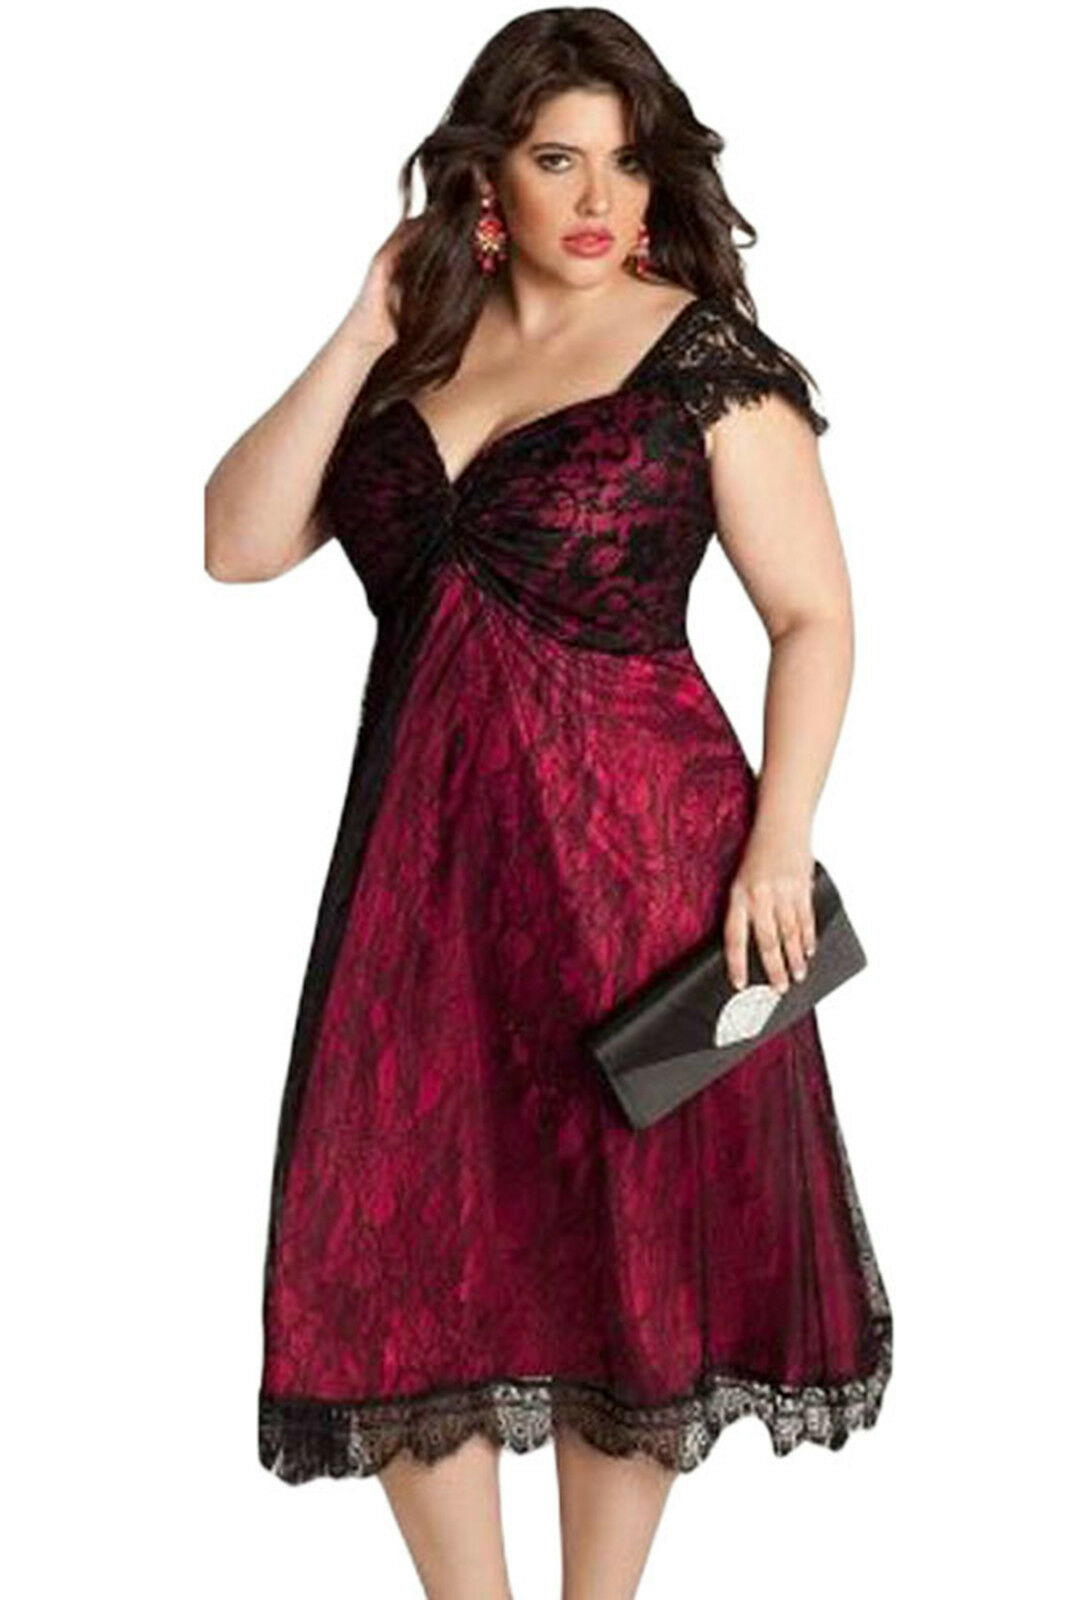 Abito ricamo Pizzo Taglie forti Grandi Curvy Formosa Plus Size Lace Dress XL